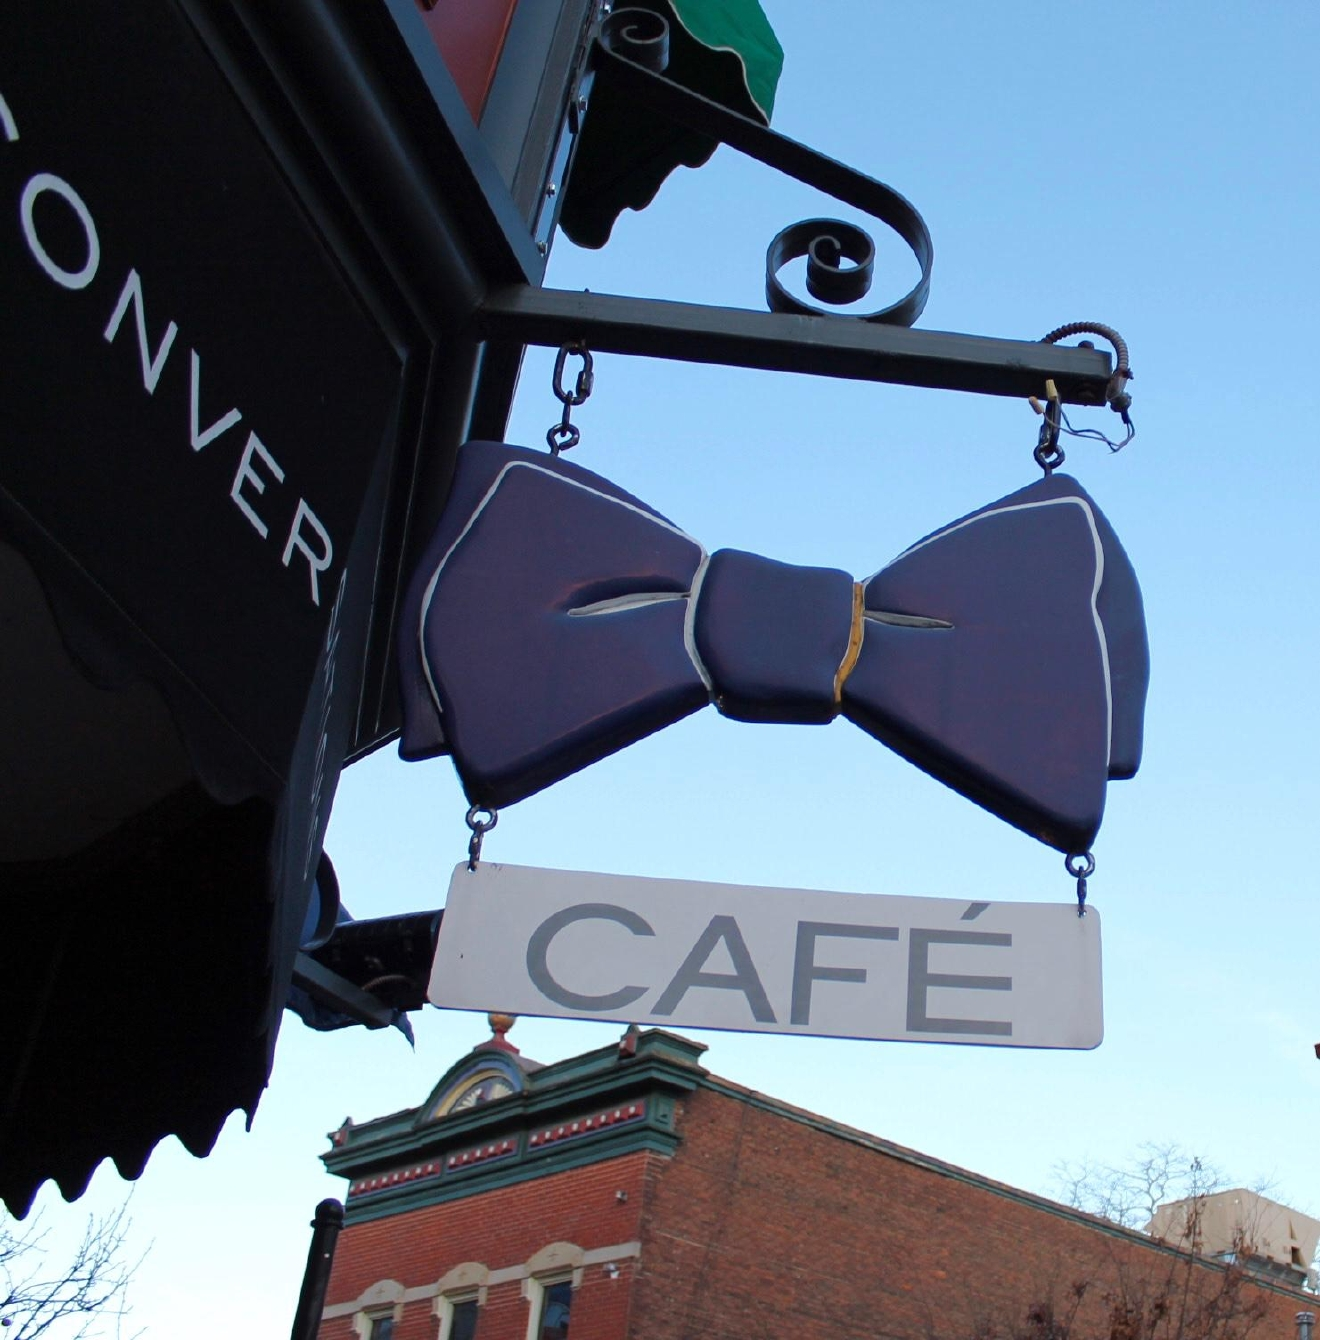 Bow Tie Cafe serves hand-crafted espresso drinks, casual bistro fare (including a weekend brunch menu), and coffee-inspired craft cocktails. They are located at 1101 St. Gregory St. (45202). / Image: Rose Brewington // Published: 1.4.17